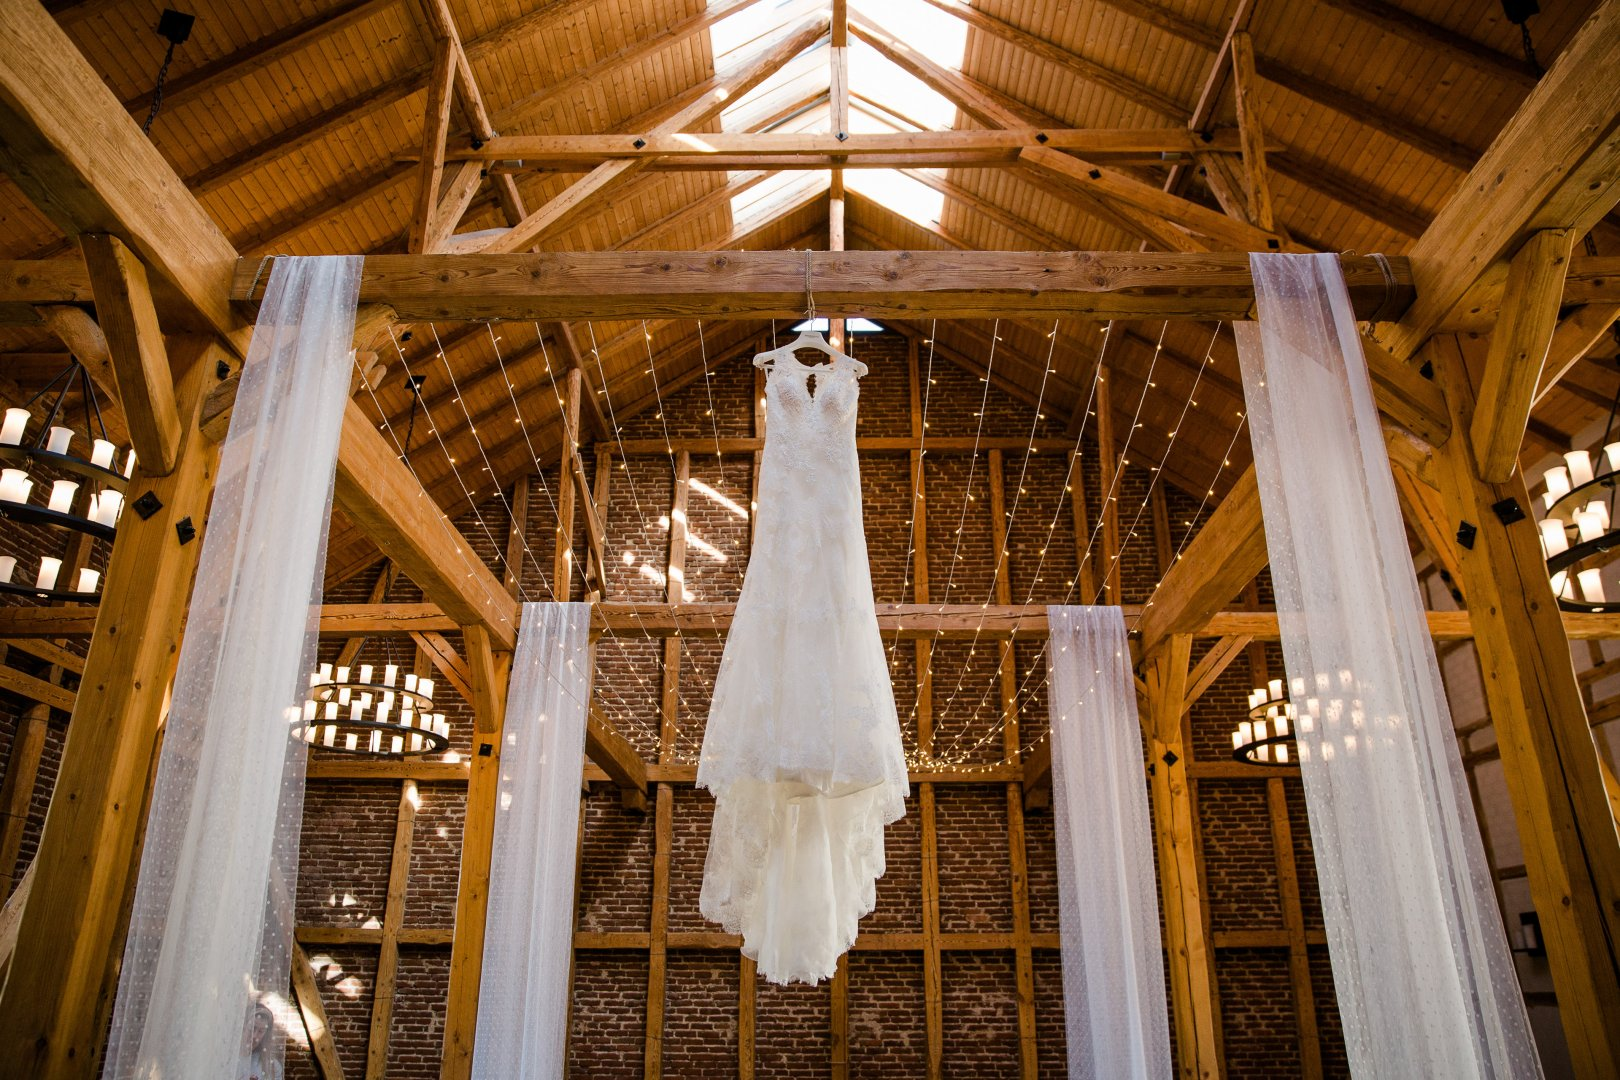 Photograph Dress Wedding dress Bridal clothing Ceiling Room Bride Aisle Ceremony Chapel Wood Place of worship Gown Wedding Beam Building